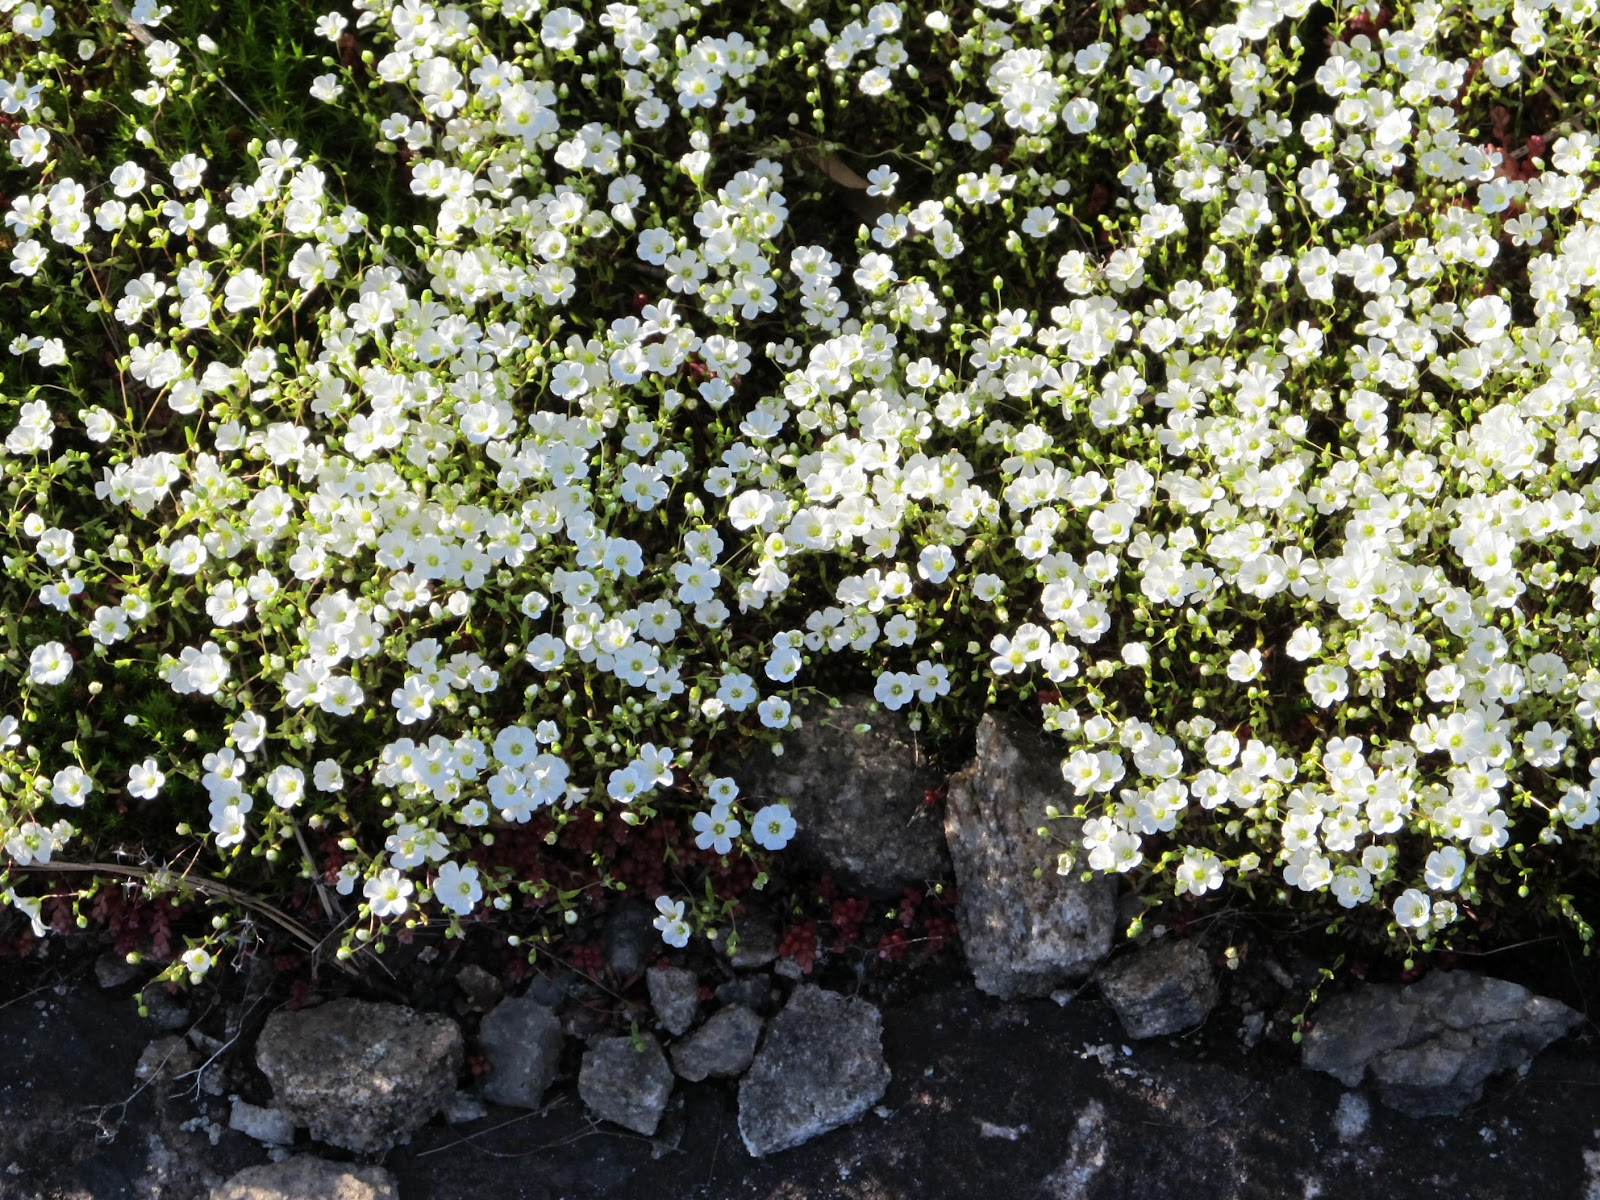 White Flower Names And Their Meanings In England Gardening Flower